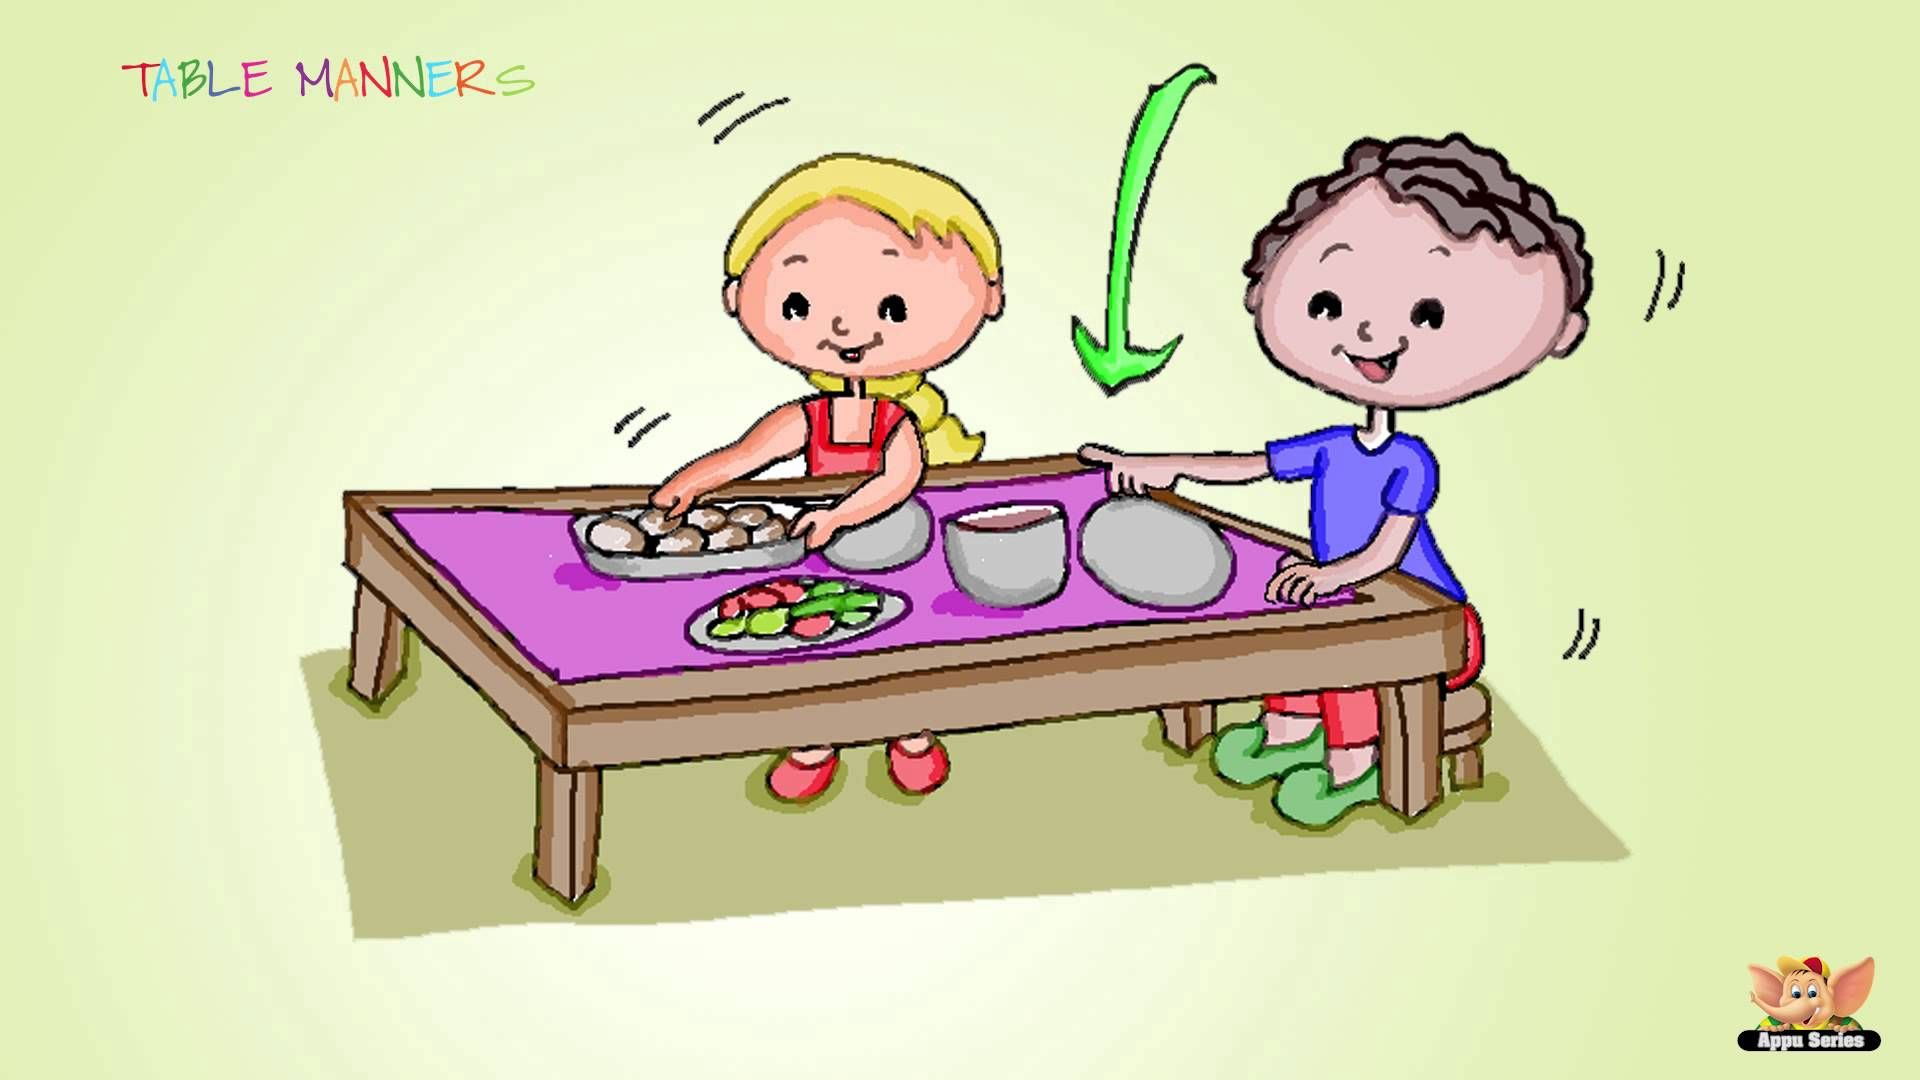 Manners And Etiquette For Children Is Ranked As The Most Important Quality To Nurture In The